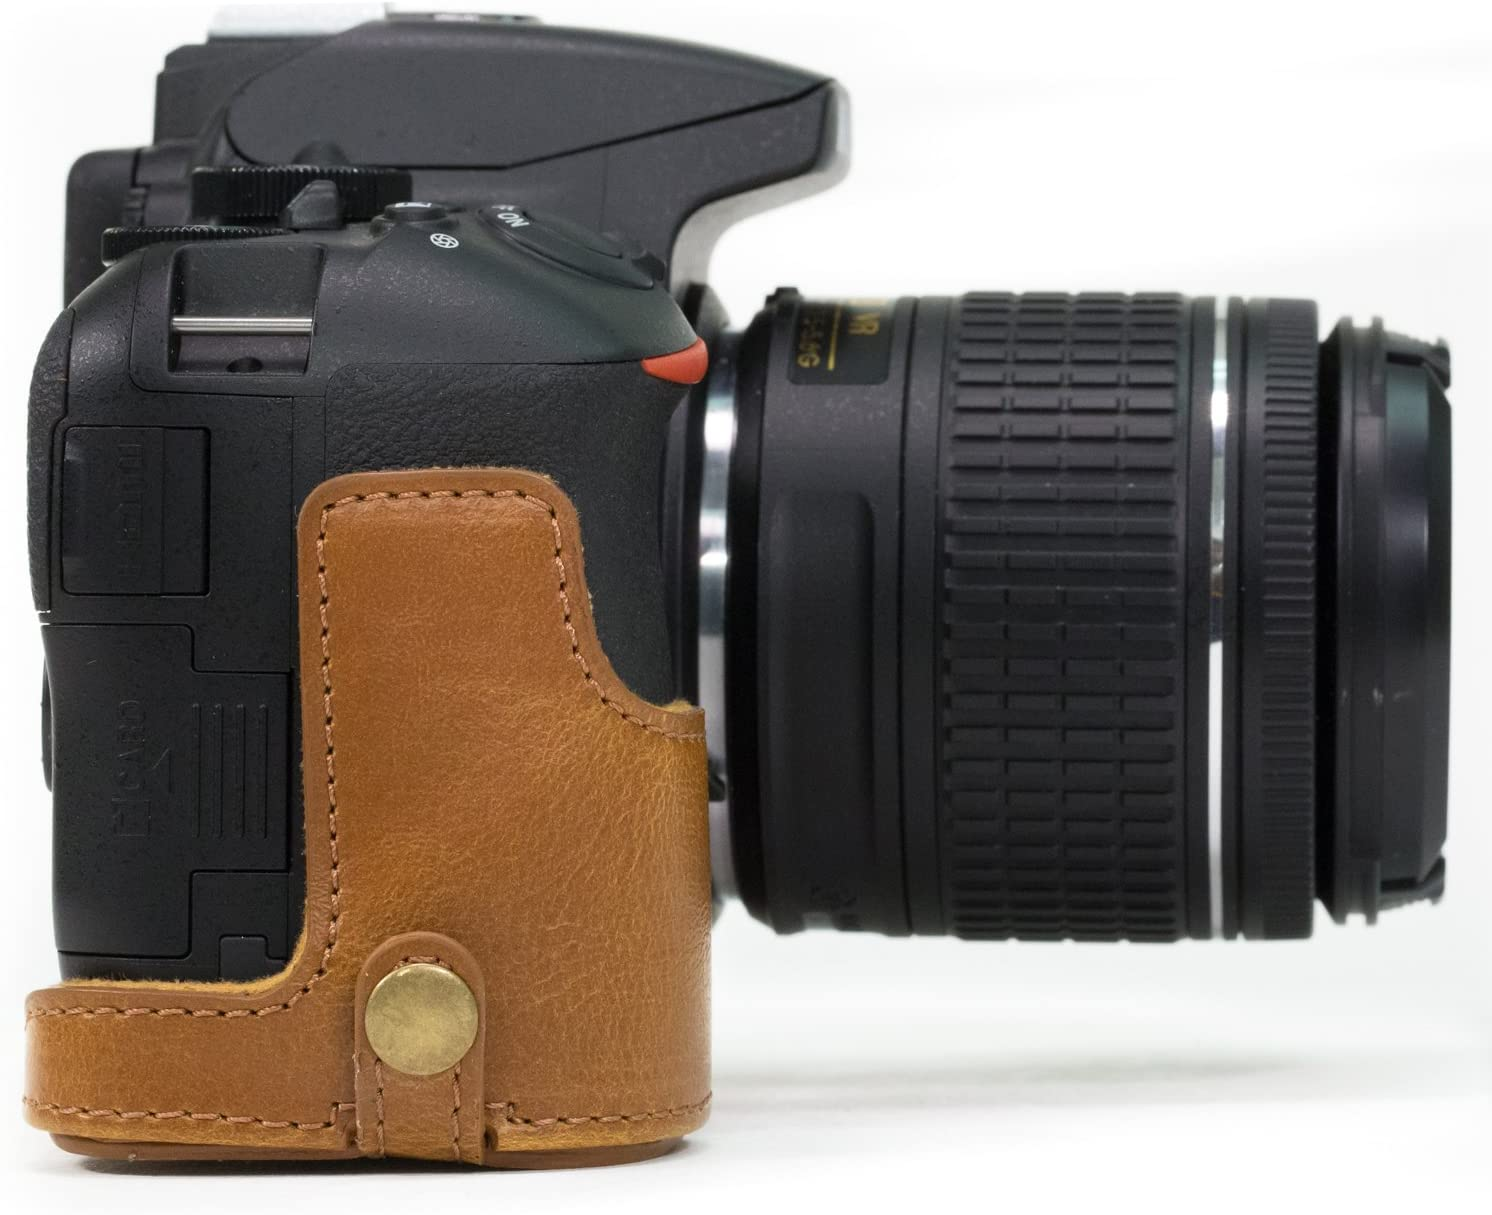 MegaGear Ever Ready Leather Camera Half Case compatible with Nikon D5600 D5500